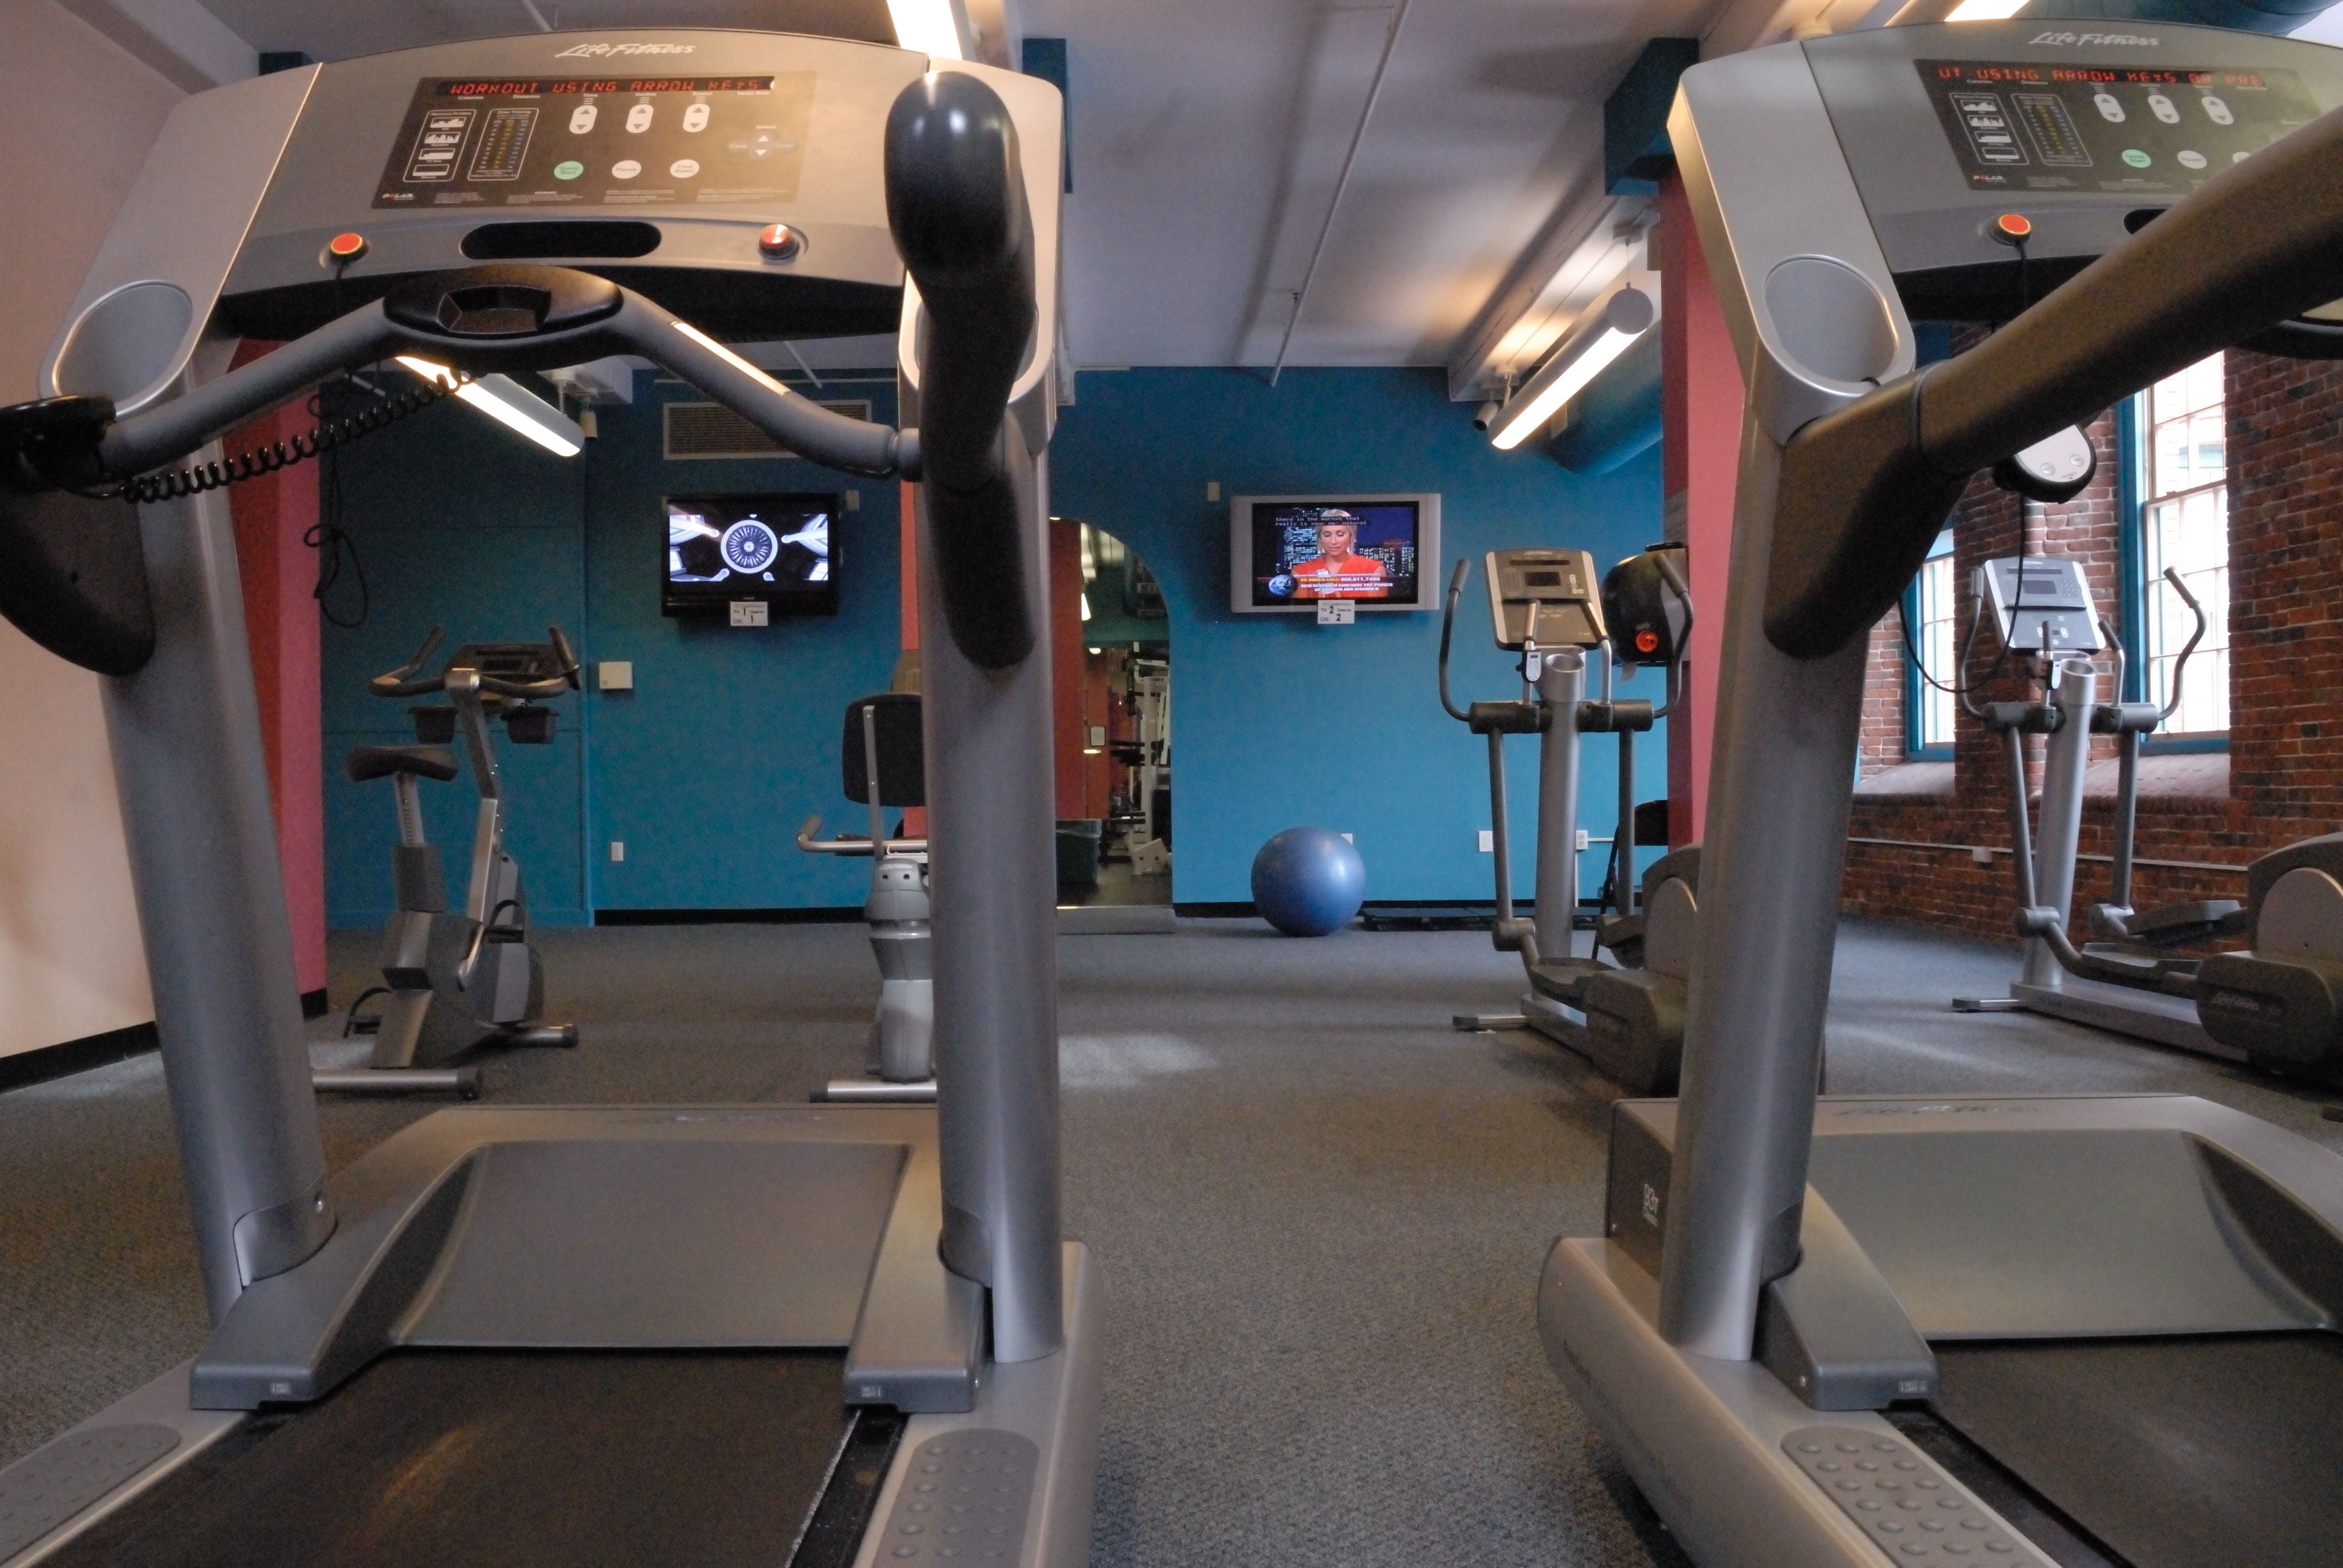 Treadmills, elliptical trainers and bicycles—you'll get the aerobic workout you want.